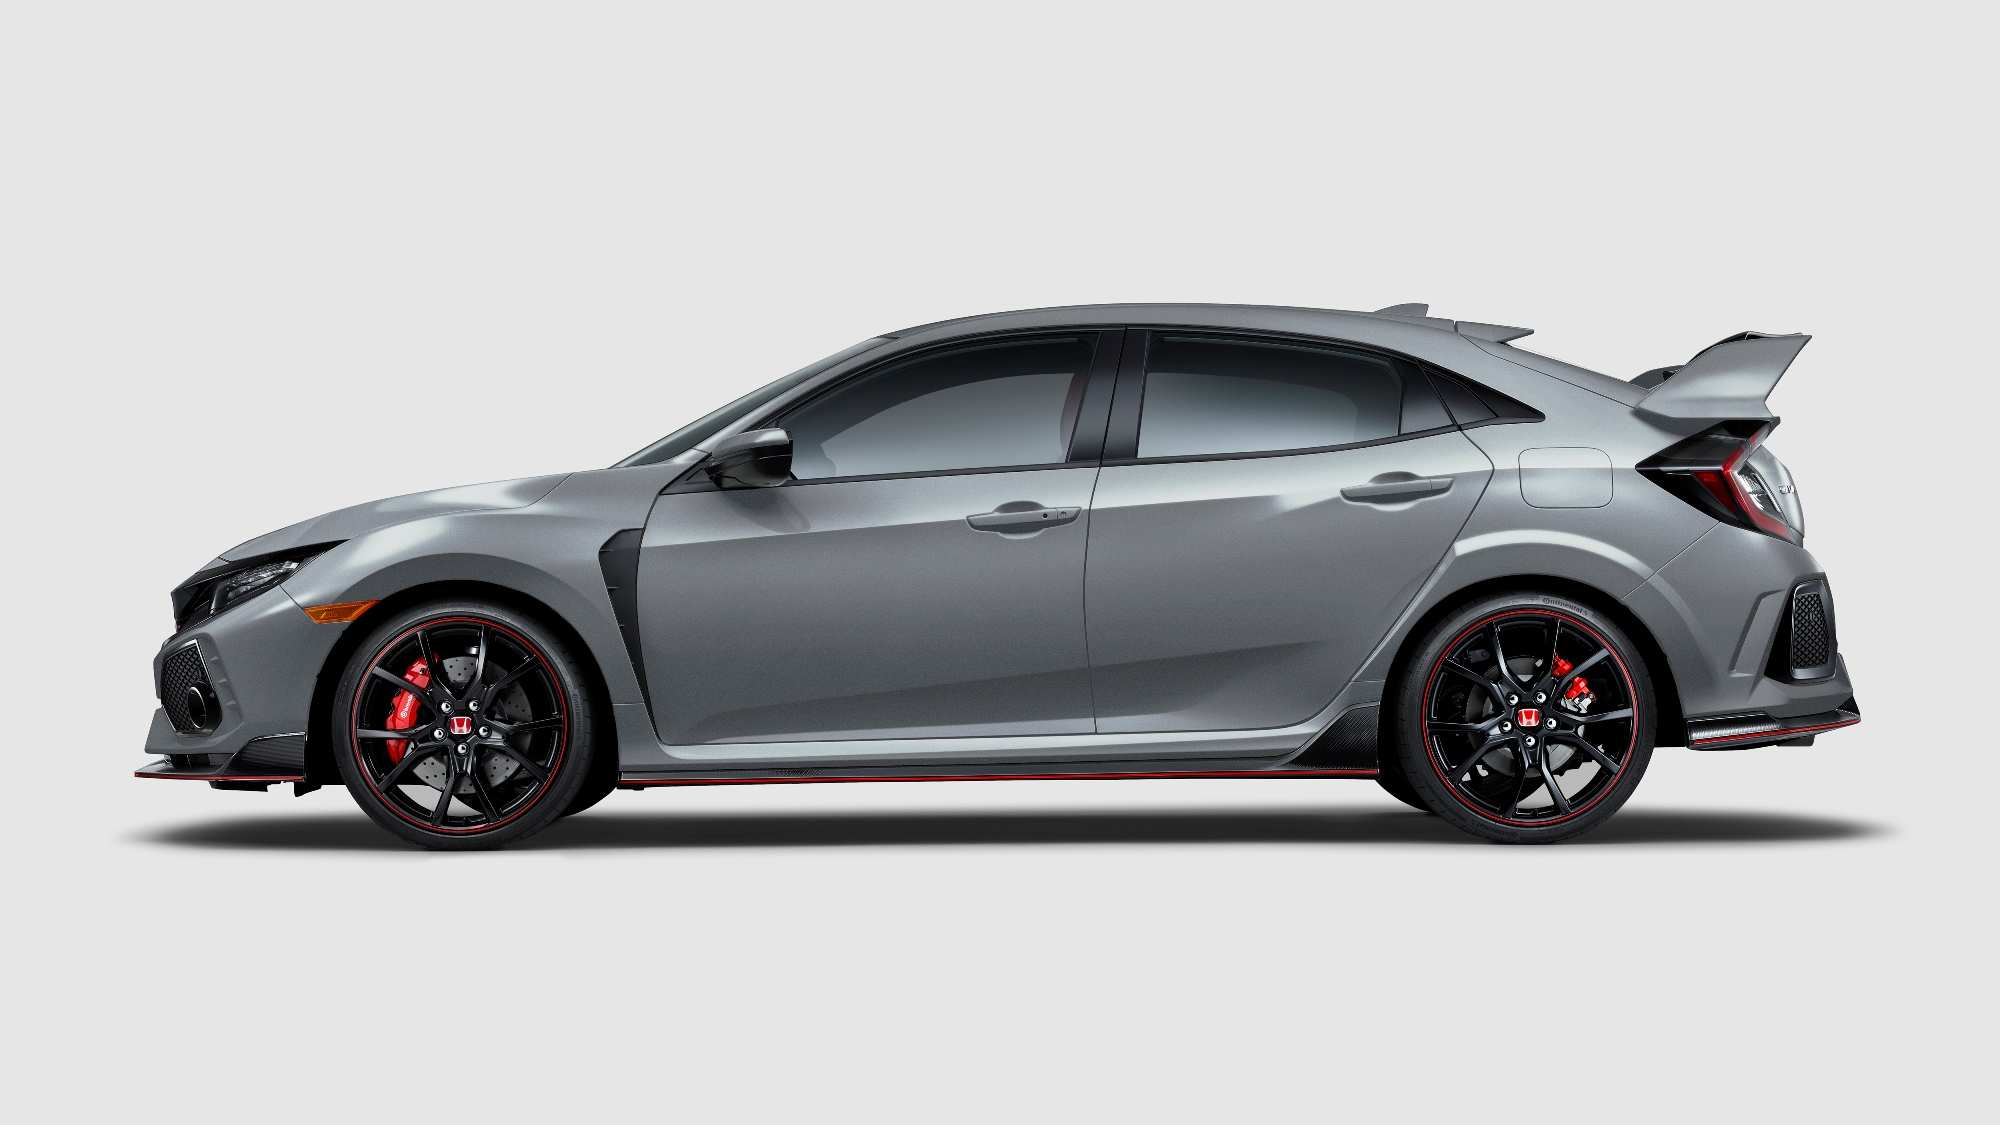 92 All New 2019 Honda Civic Type R Exterior for 2019 Honda Civic Type R